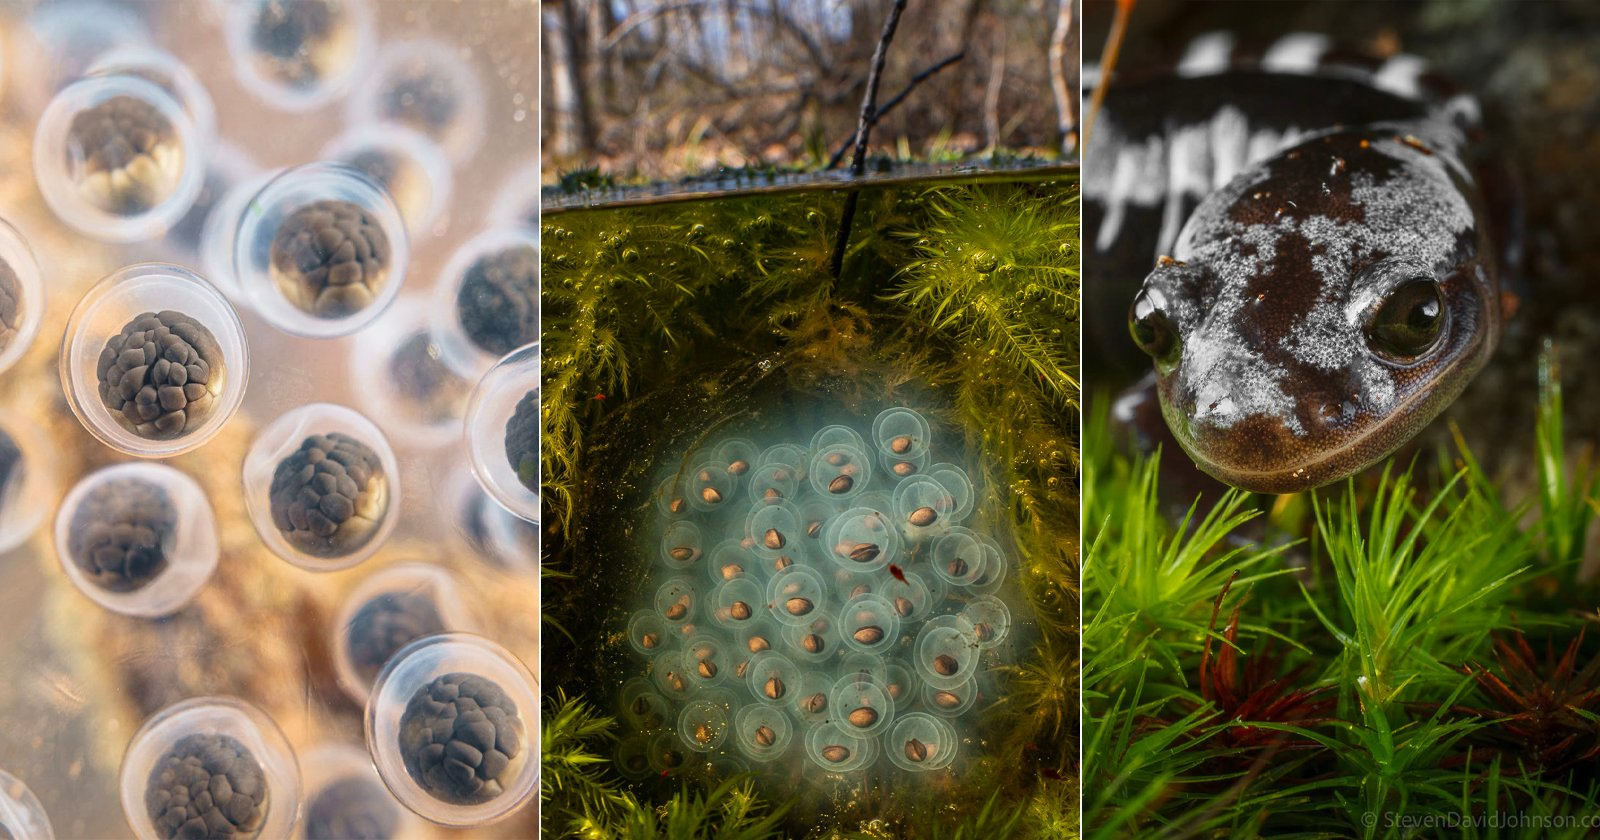 Stunning Macro Photos Shot Within the Unique World of Vernal Pools